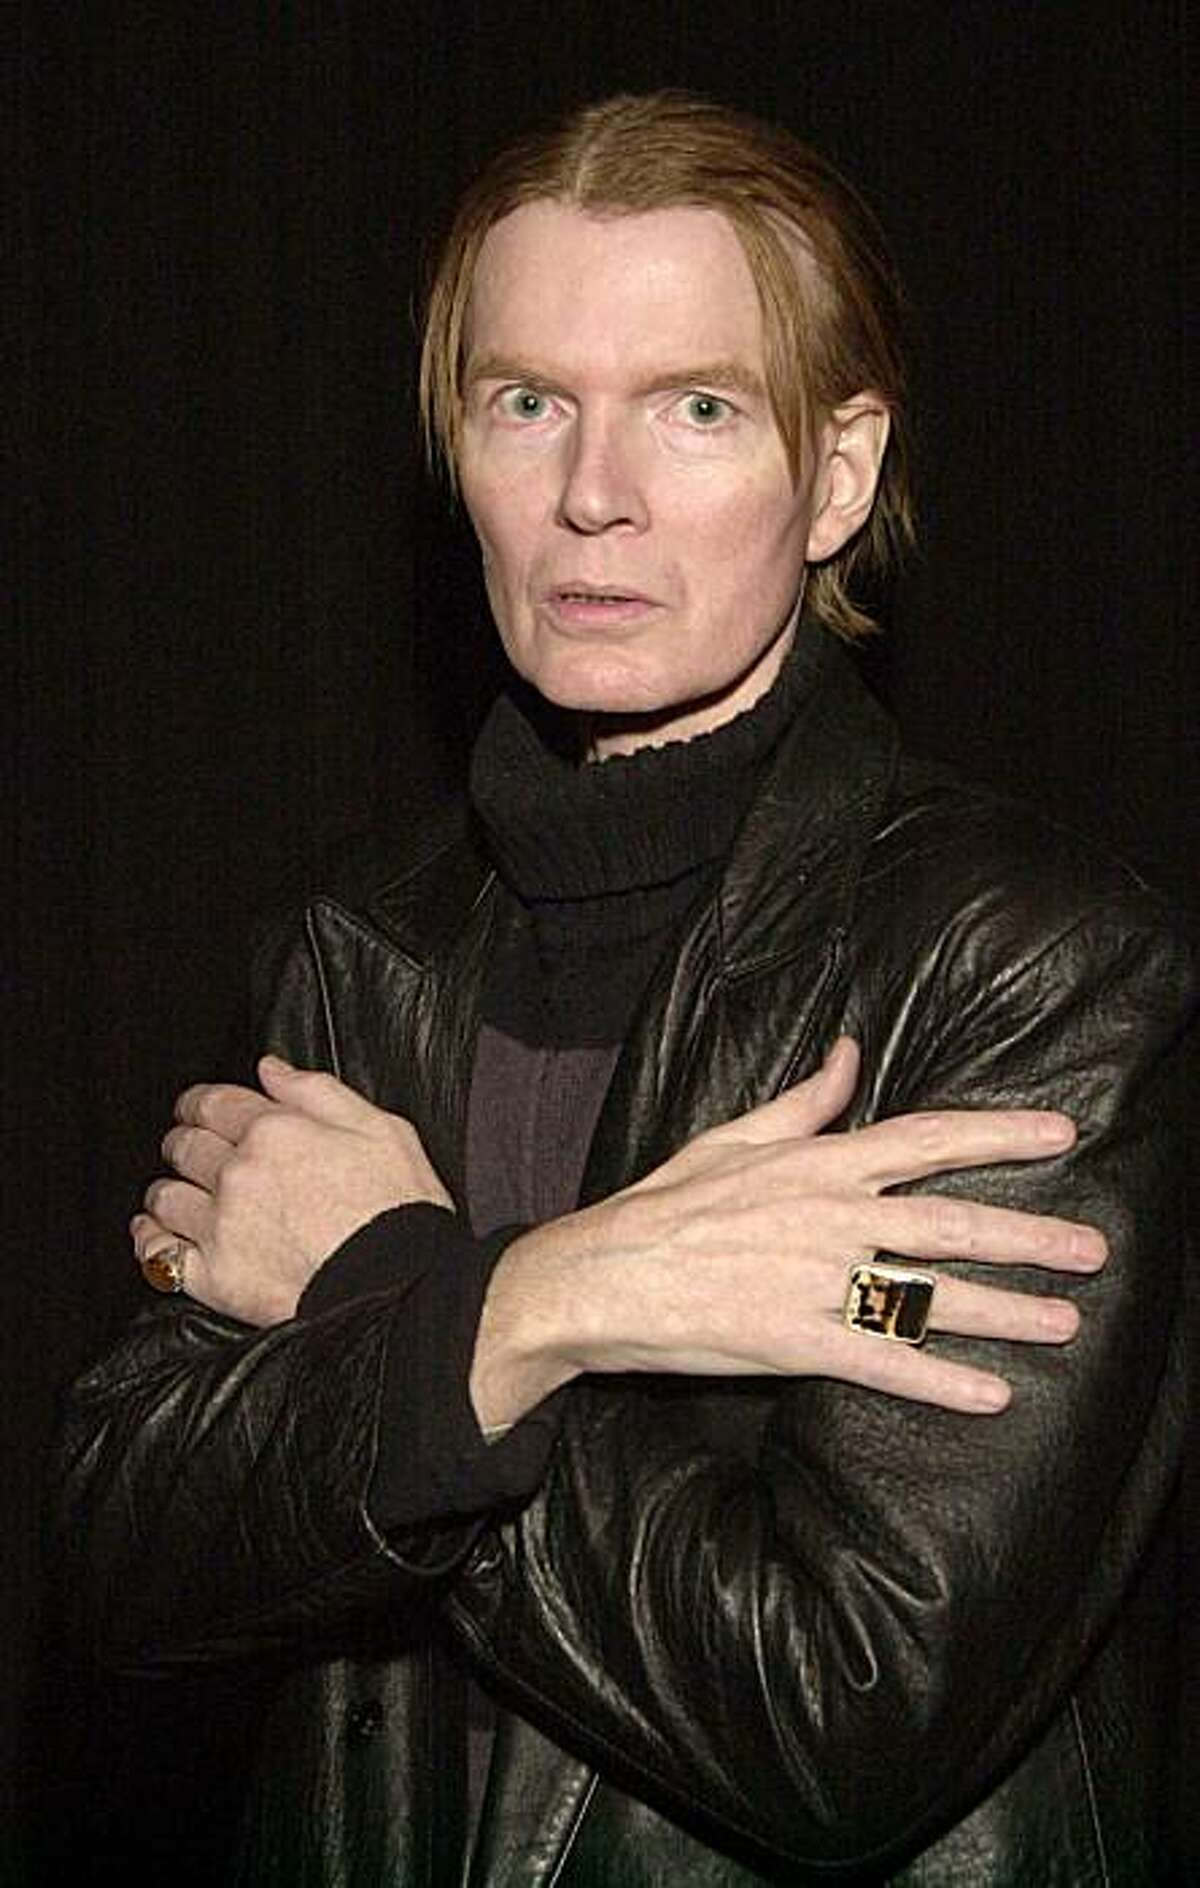 """NEW YORK - FEBRUARY 19: (FILE PHOTO) Jim Carroll, author of """"The Basketball Diaries"""", poses before a reading from his new book of poems """"Void of Course: Poems 1994-1997"""" and other works February 19, 2002 in the Brooklyn borough of New York City. Poet and musician Jim Carroll, who is best known for his memoir """"The Basketball Diaries"""" died of a heart attack September 11, 2009 at his home in New York City. (Photo by Andrew Serban/Getty Images)"""